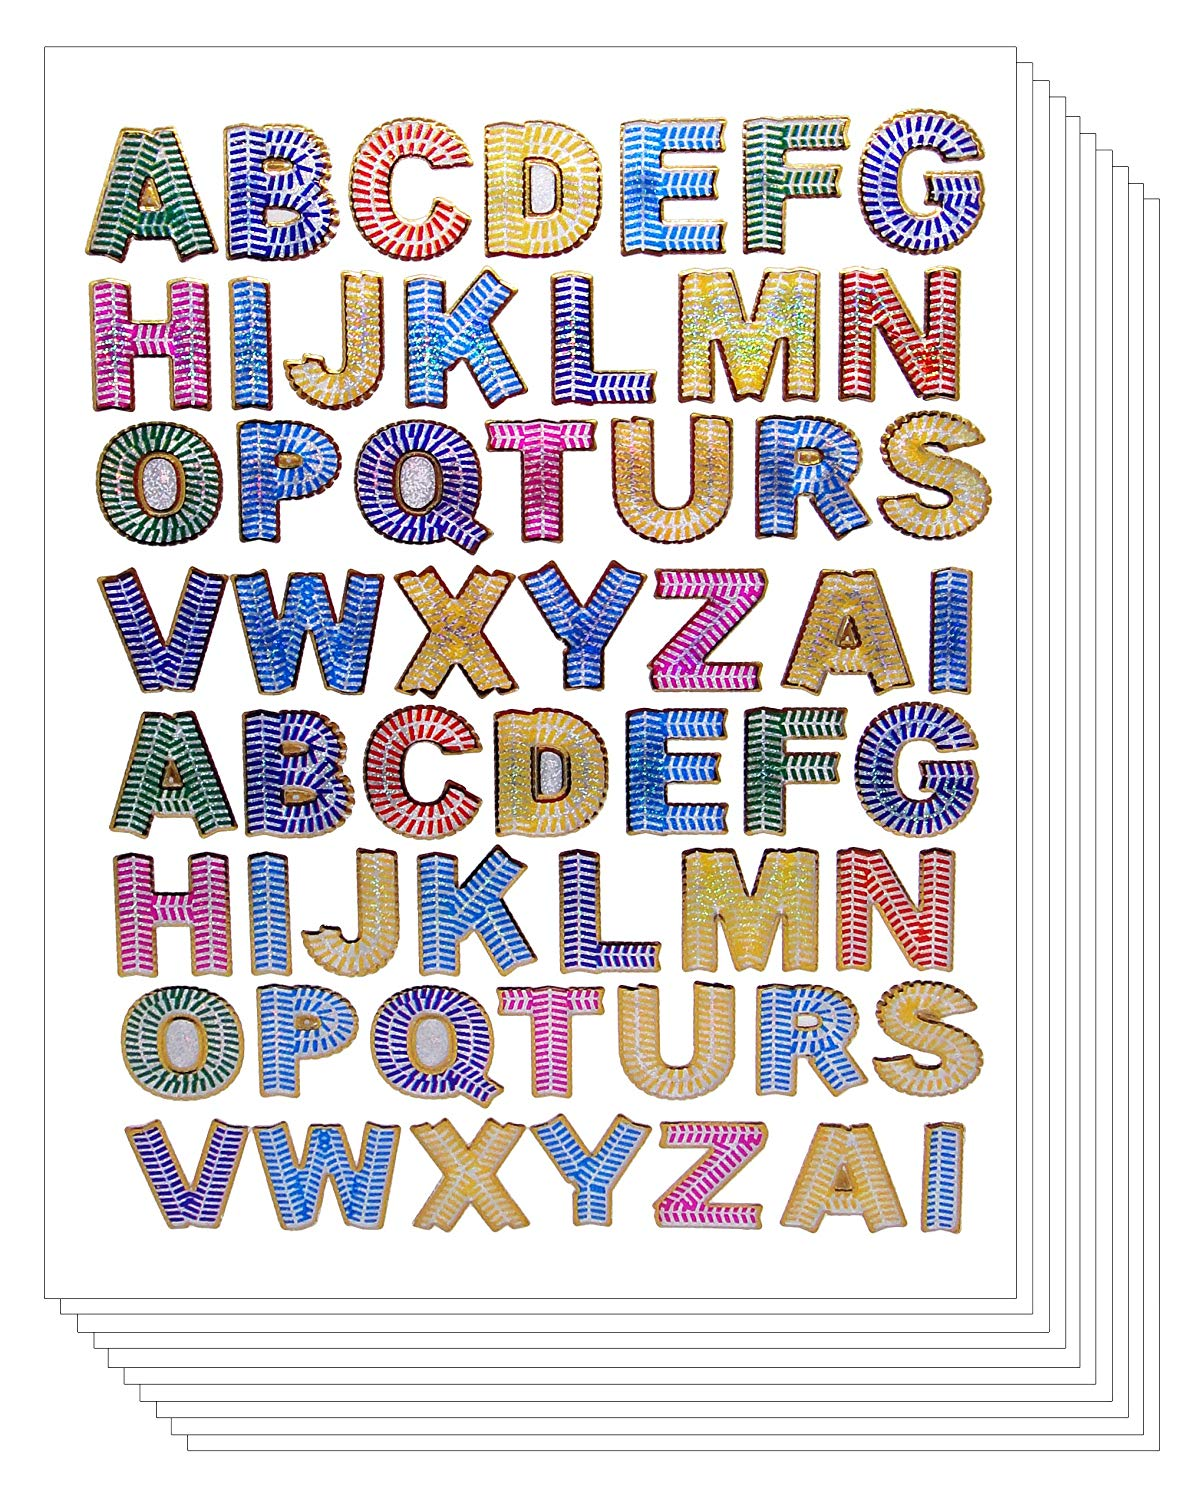 A to Z Colorful Decorative Stickers - Primary Alphabet Letters Label (PACK OF 10 sheets, Assorted Color)